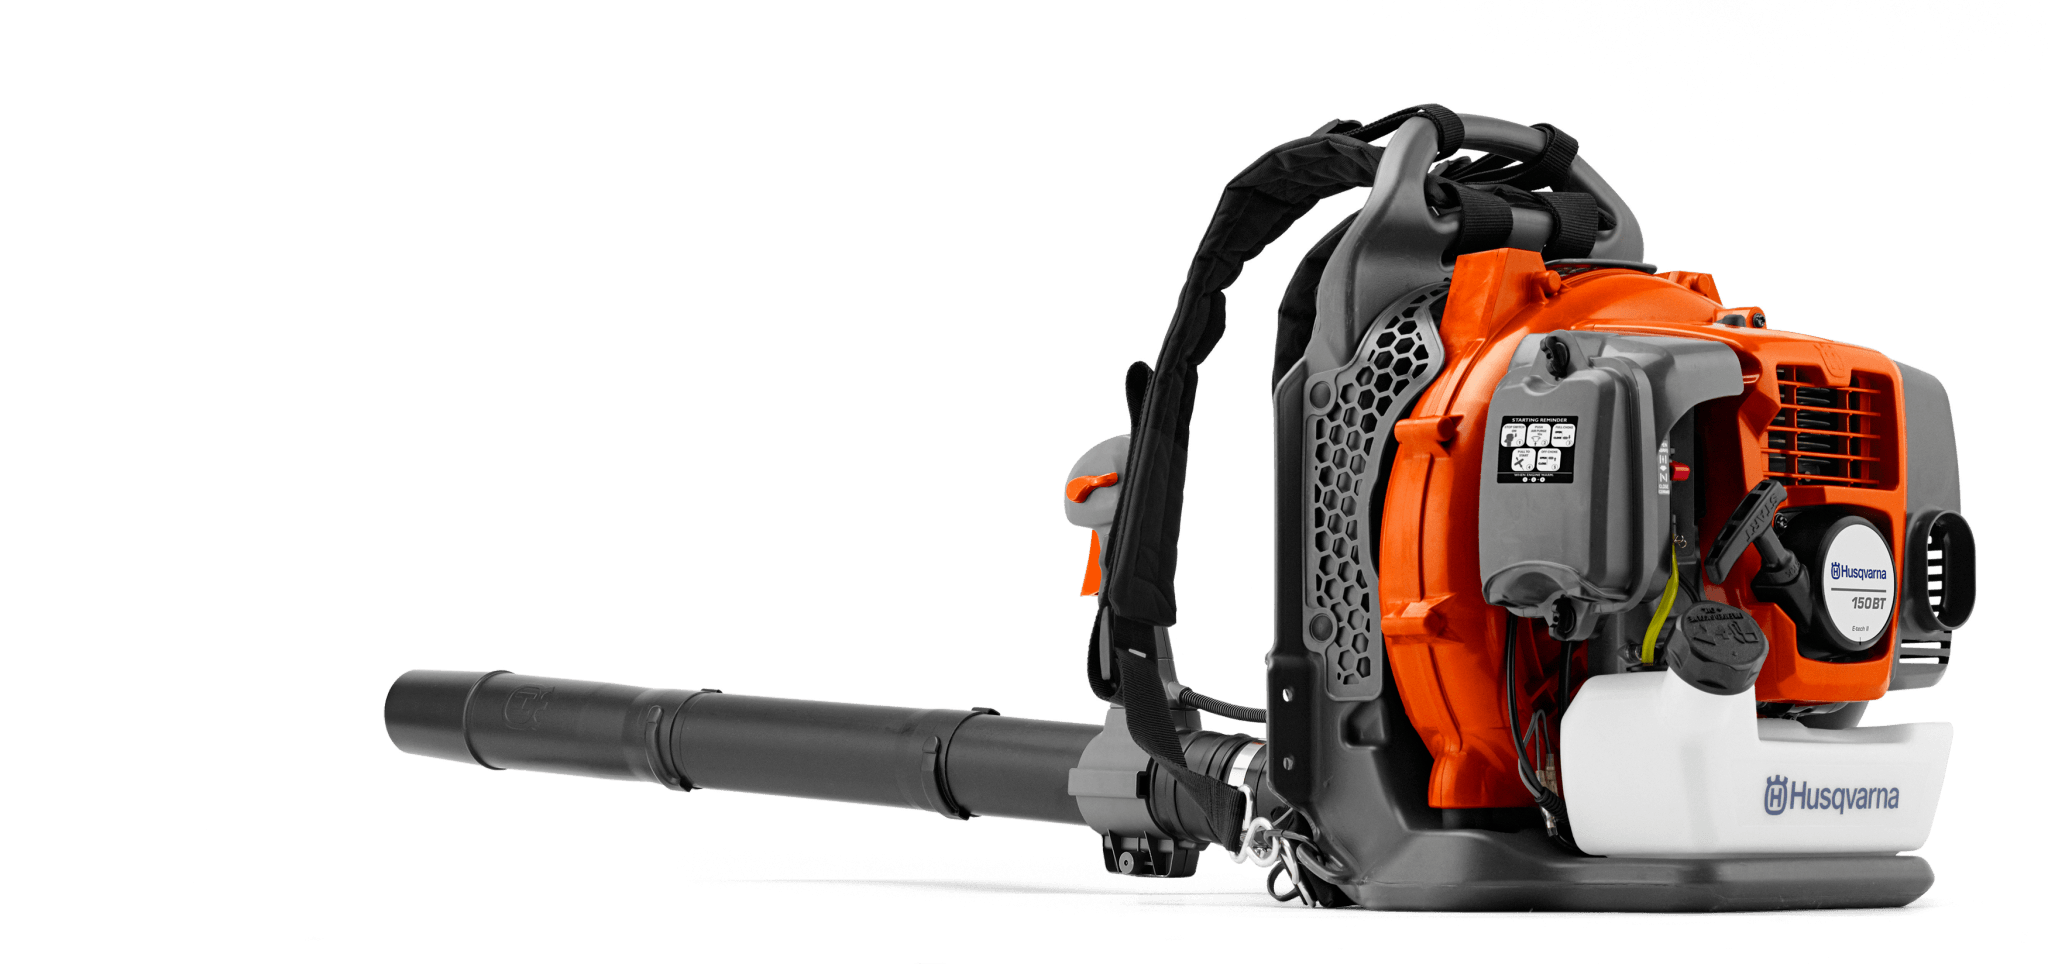 Best Commercial Leaf Blower Husqvarna 150BT